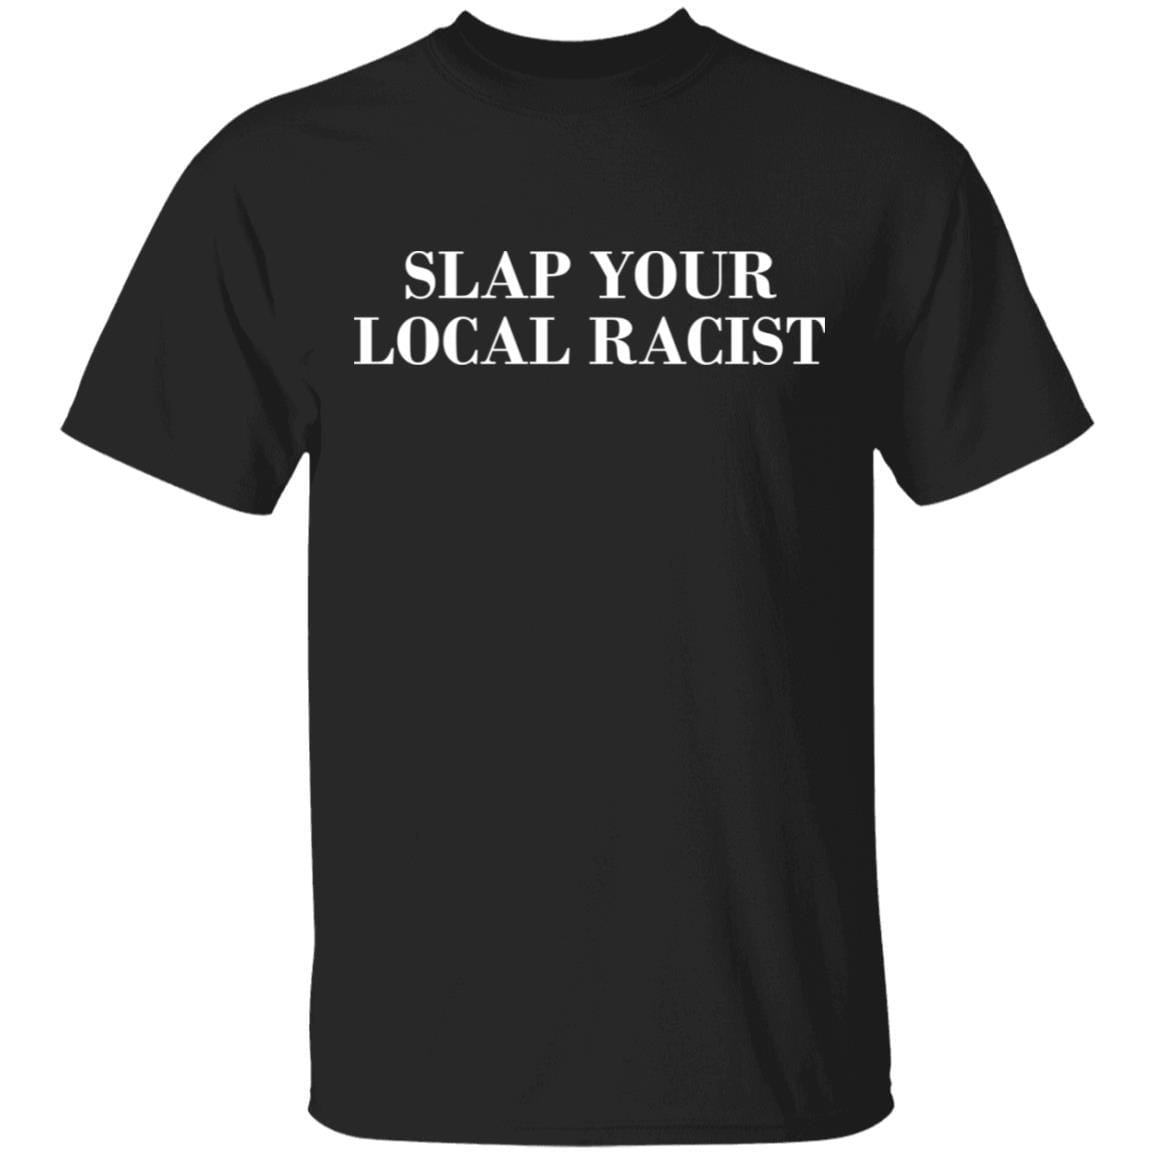 Slap Your Local Racist T-Shirts, Hoodies 1049-9953-87129698-48144 - Tee Ript